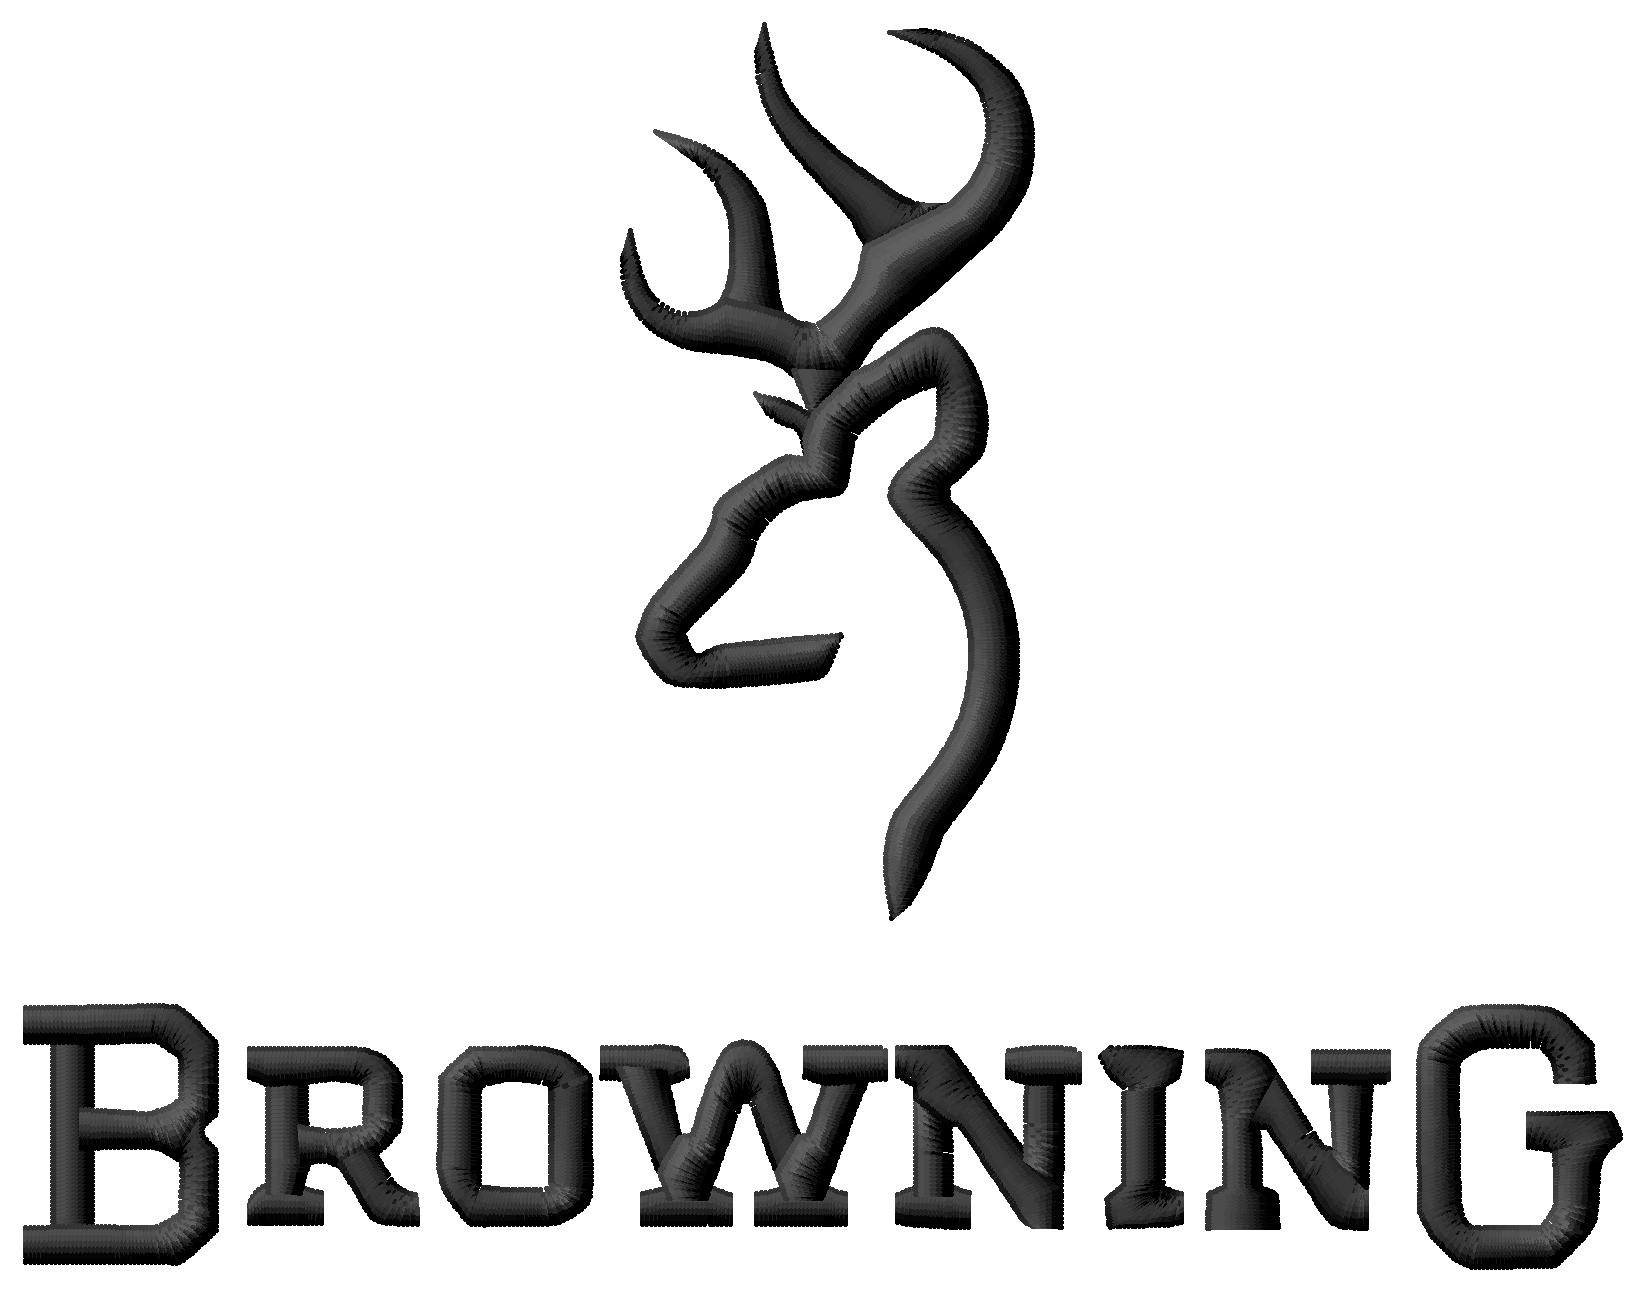 browning embroidery design 3